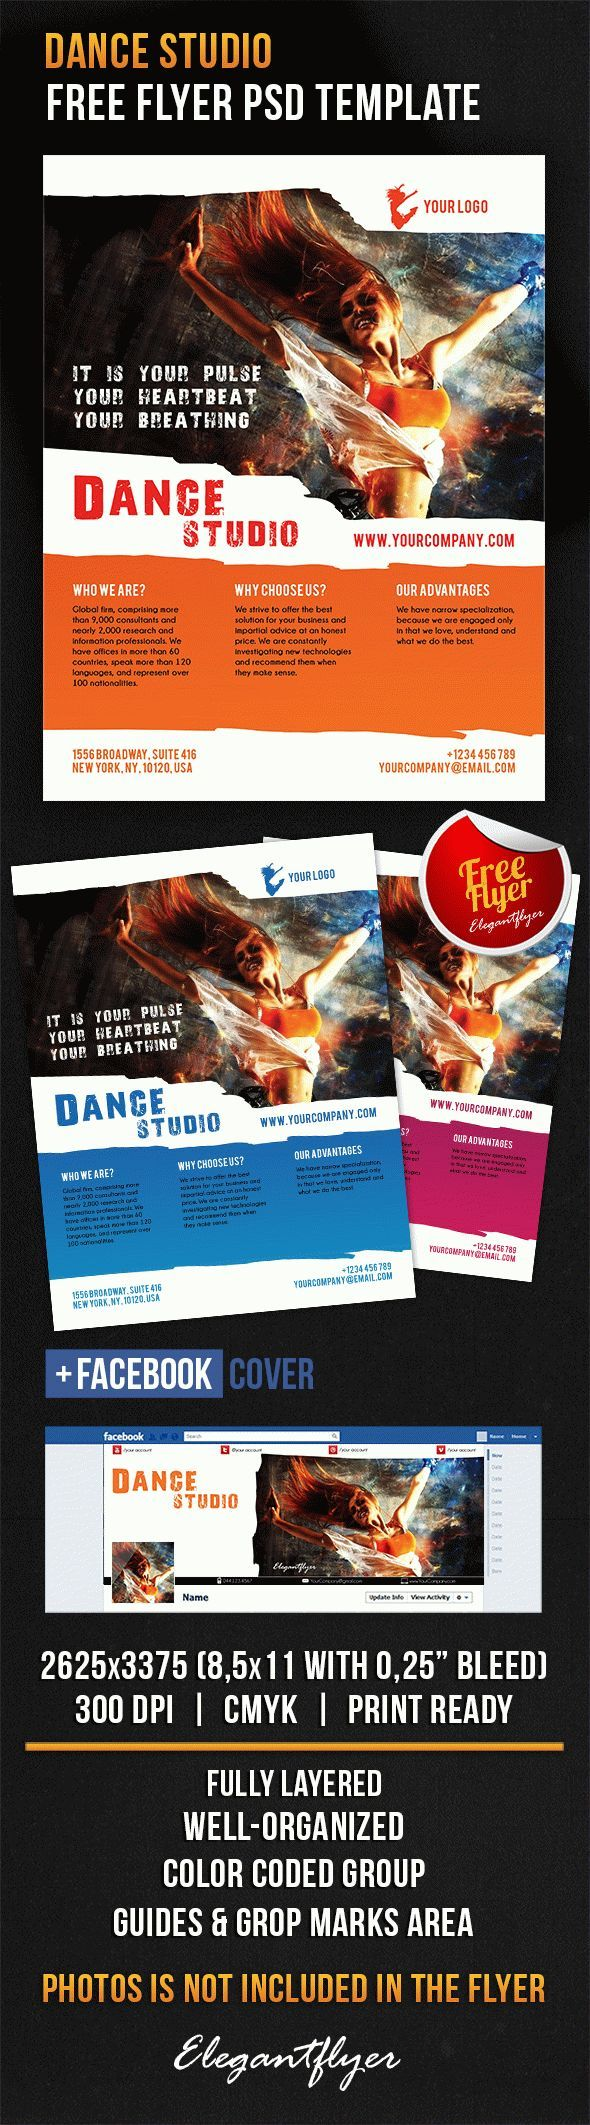 download dance studio facebook cover template psd flyer free business templates